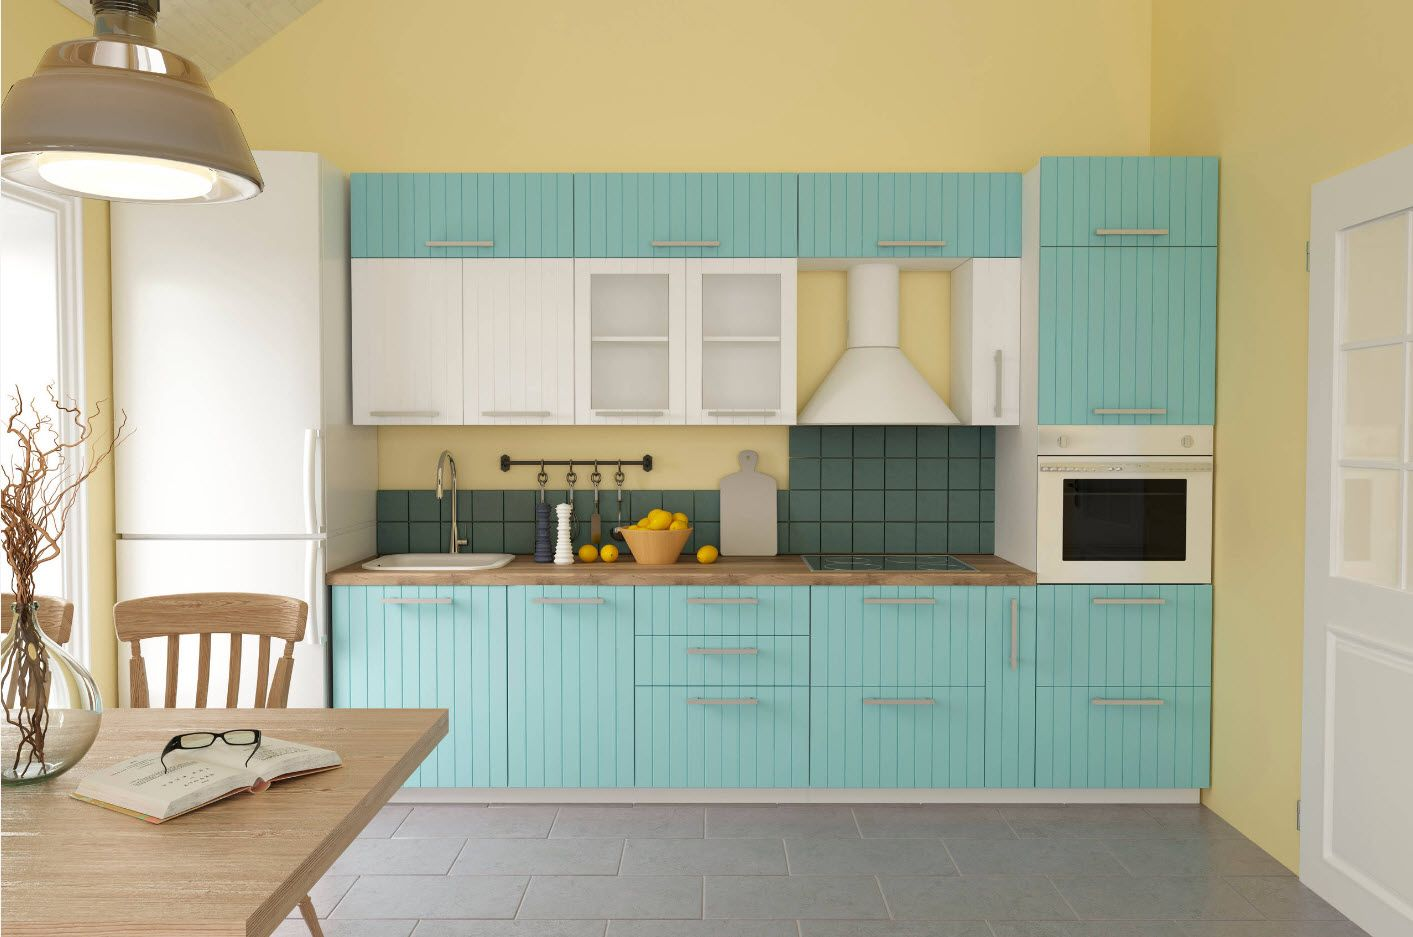 Turquoise facades of the kitchen furniture set and gray laminate at the floor